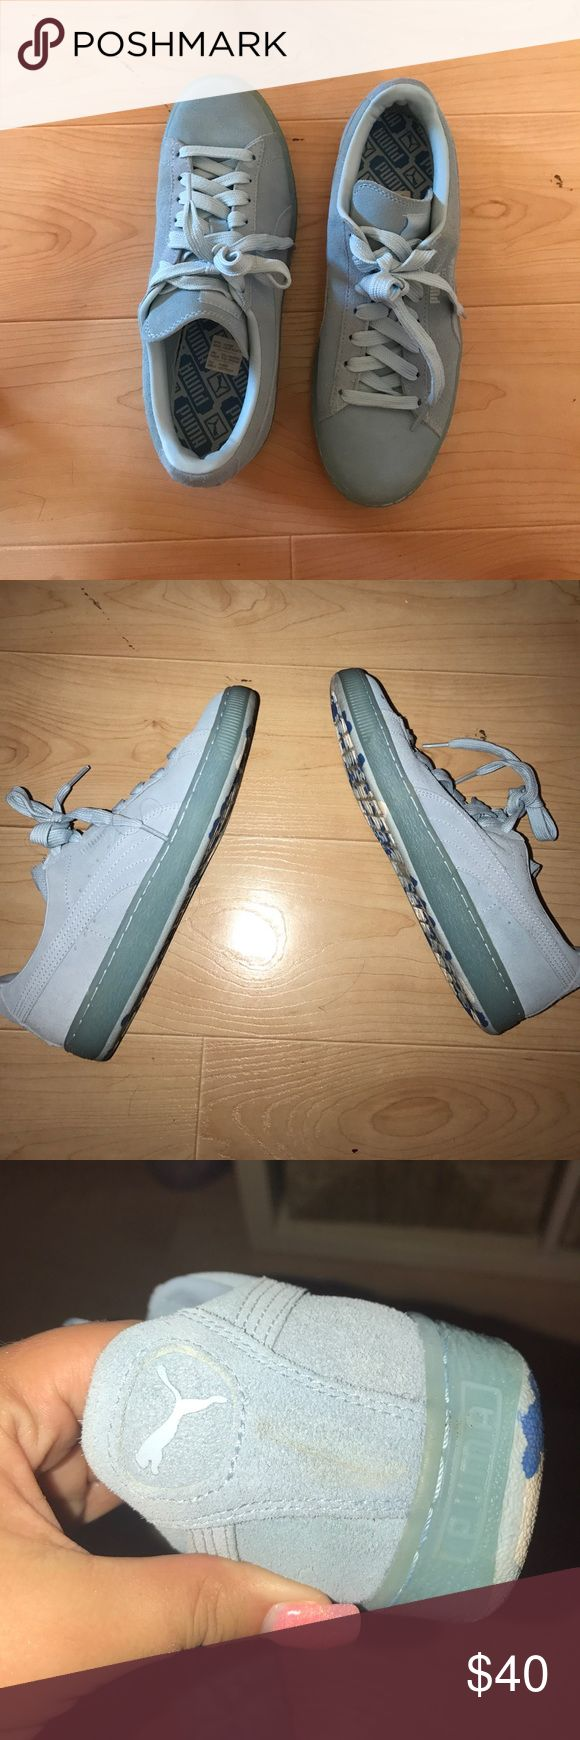 Light Blue Puma Suedes Worn a few times. Excellent condition! **** PLEASE NOTE!!! Picture shows a bit of marking, can probably be easily washed out. This is noted in price! Size 9.5 Women's and 7.5 in Men's Puma Shoes Sneakers